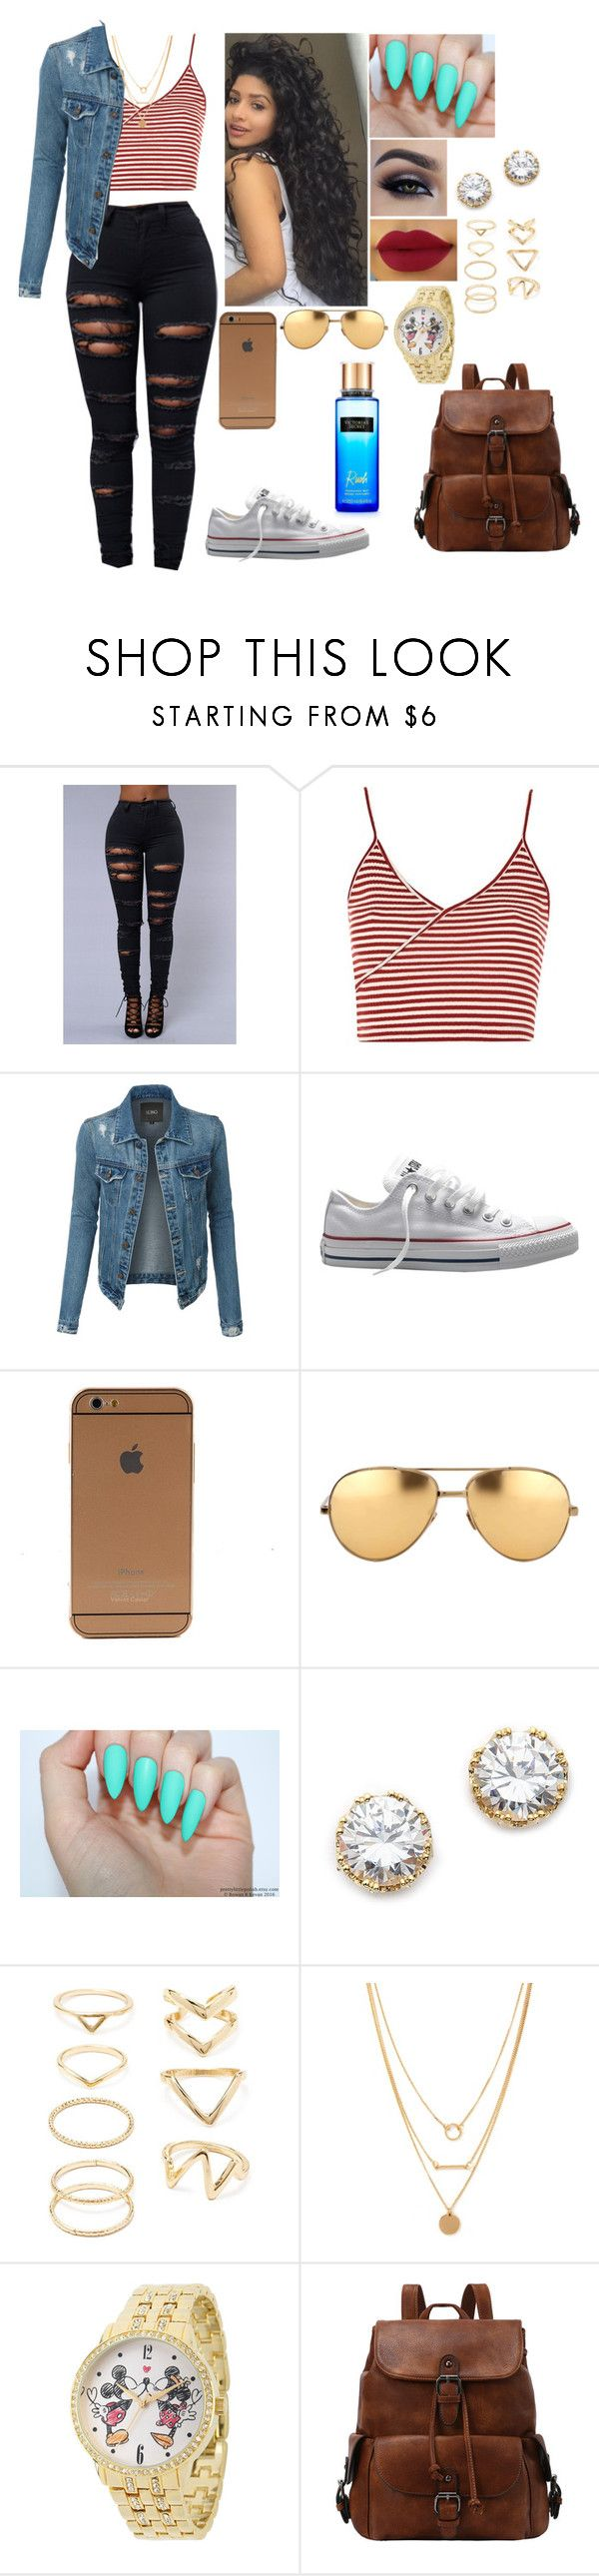 """""""."""" by mrsbreezy0522 ❤ liked on Polyvore featuring Topshop, LE3NO, Converse, Linda Farrow, Kenneth Jay Lane, Forever 21, Disney and Victoria's Secret"""